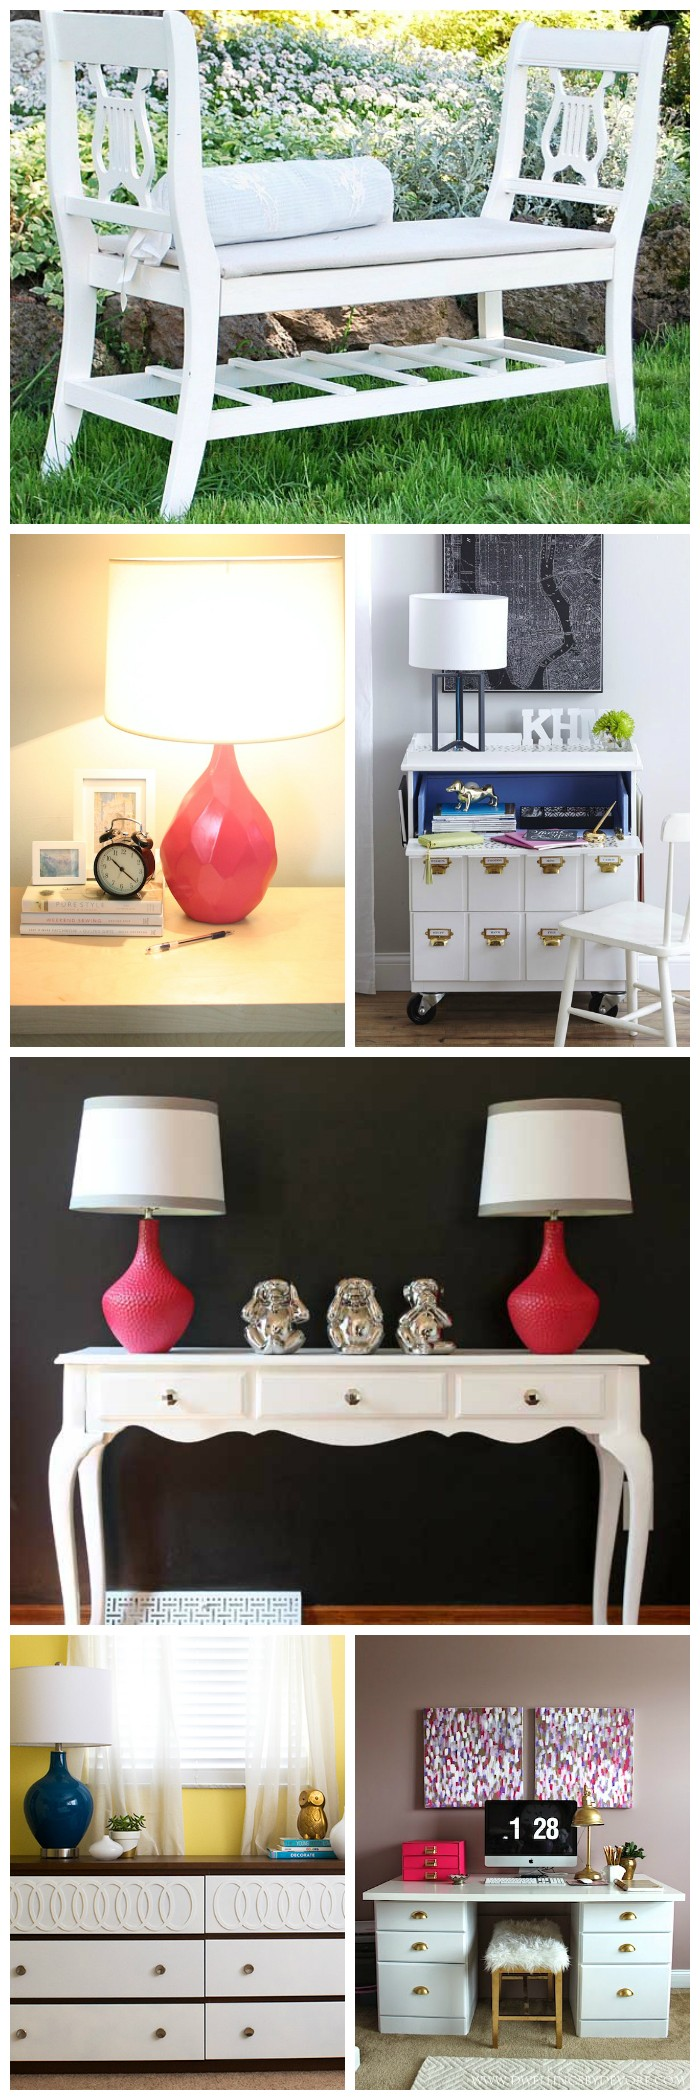 DIY Furniture Makeovers To Brighten Up Your Home